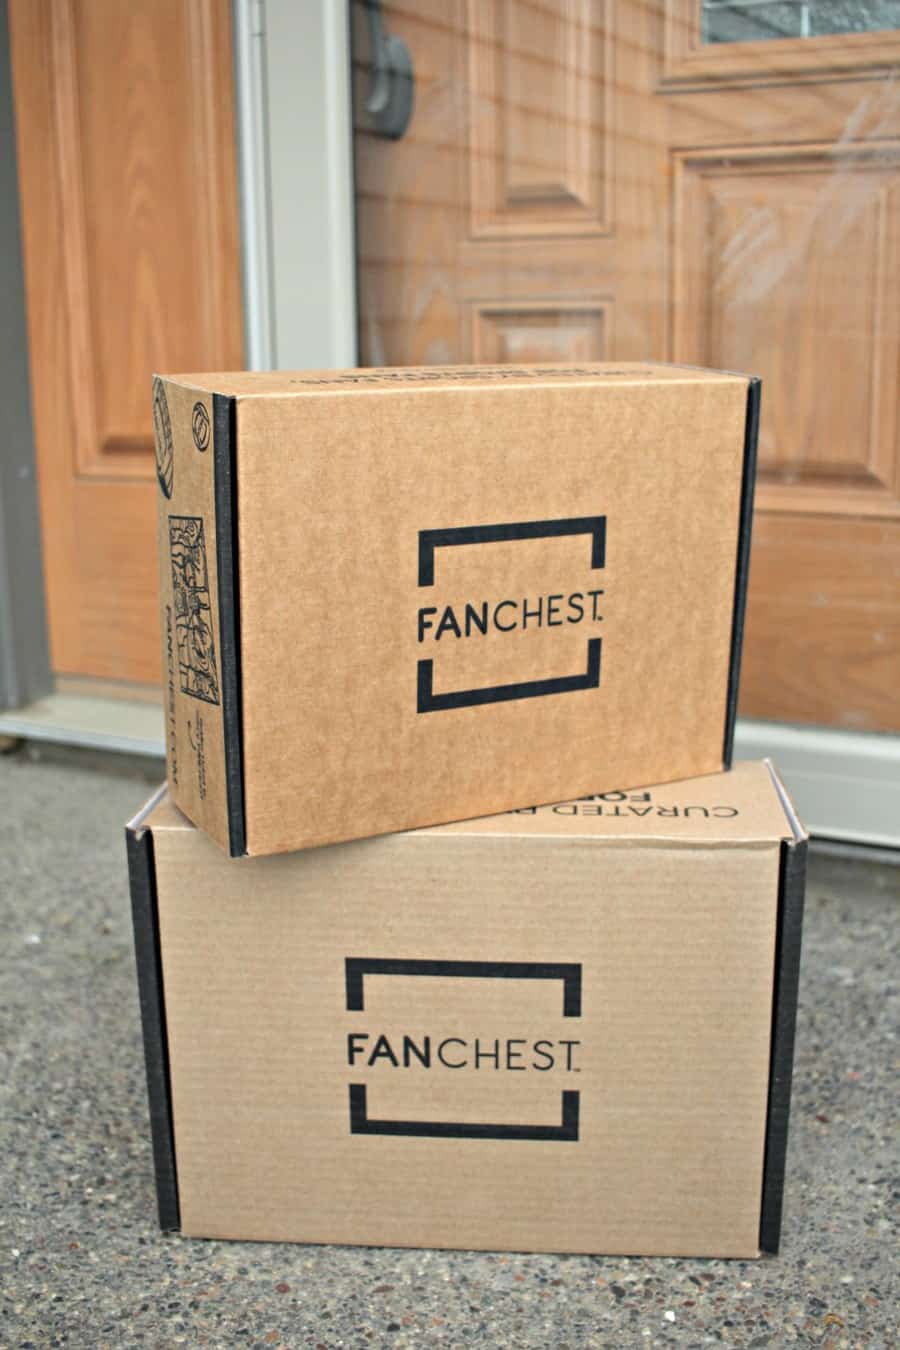 FANCHEST - Sports Box For Dad & Baby This Father's Day